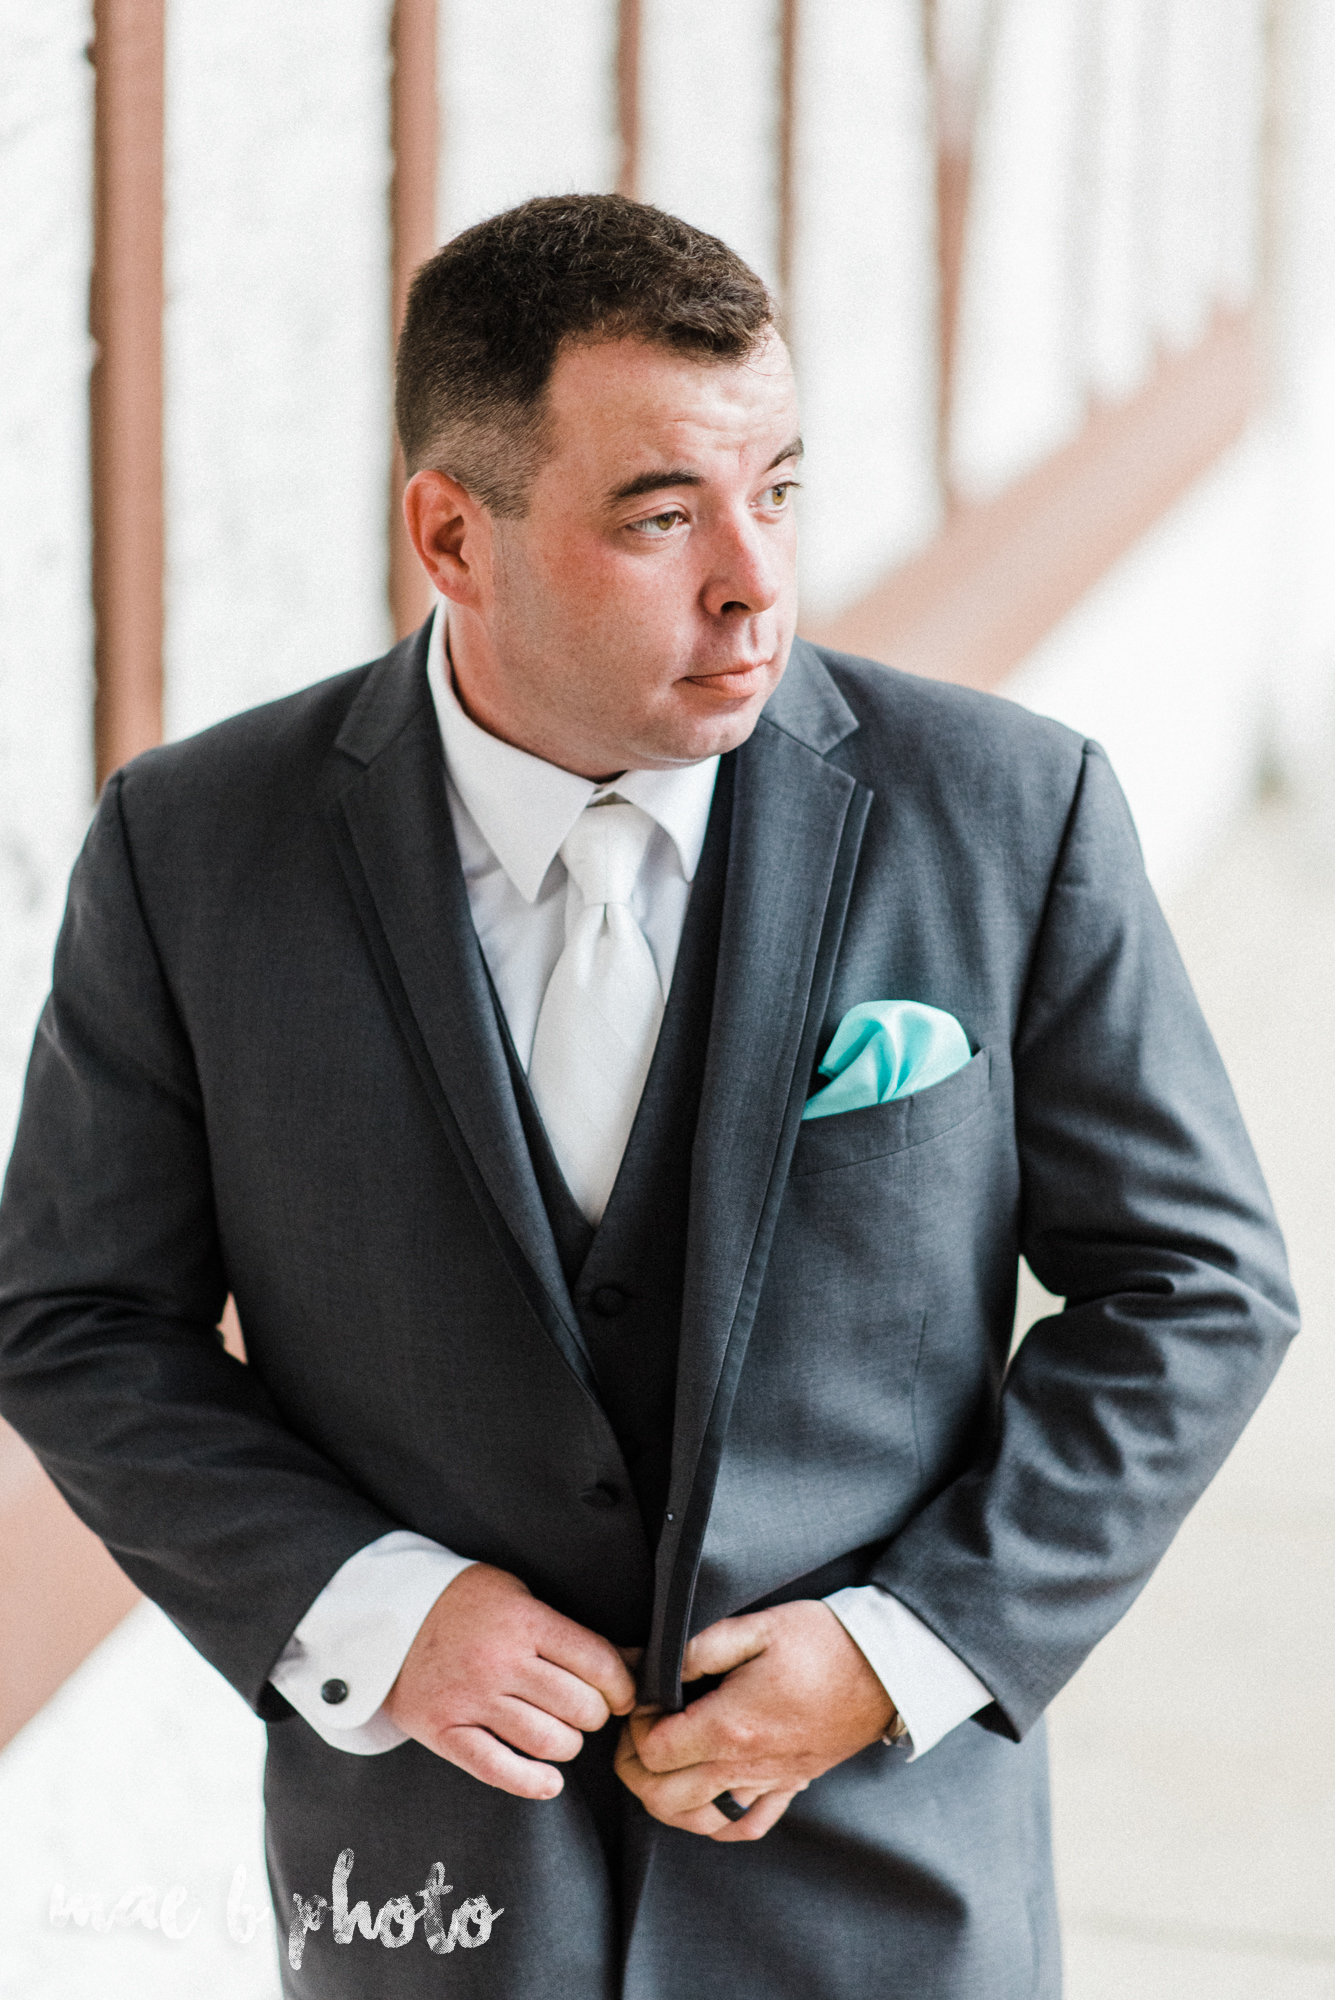 kristy and matt's summer wedding at the embassy in youngstown ohio photographed by youngstown wedding photographer mae b photo-2.jpg